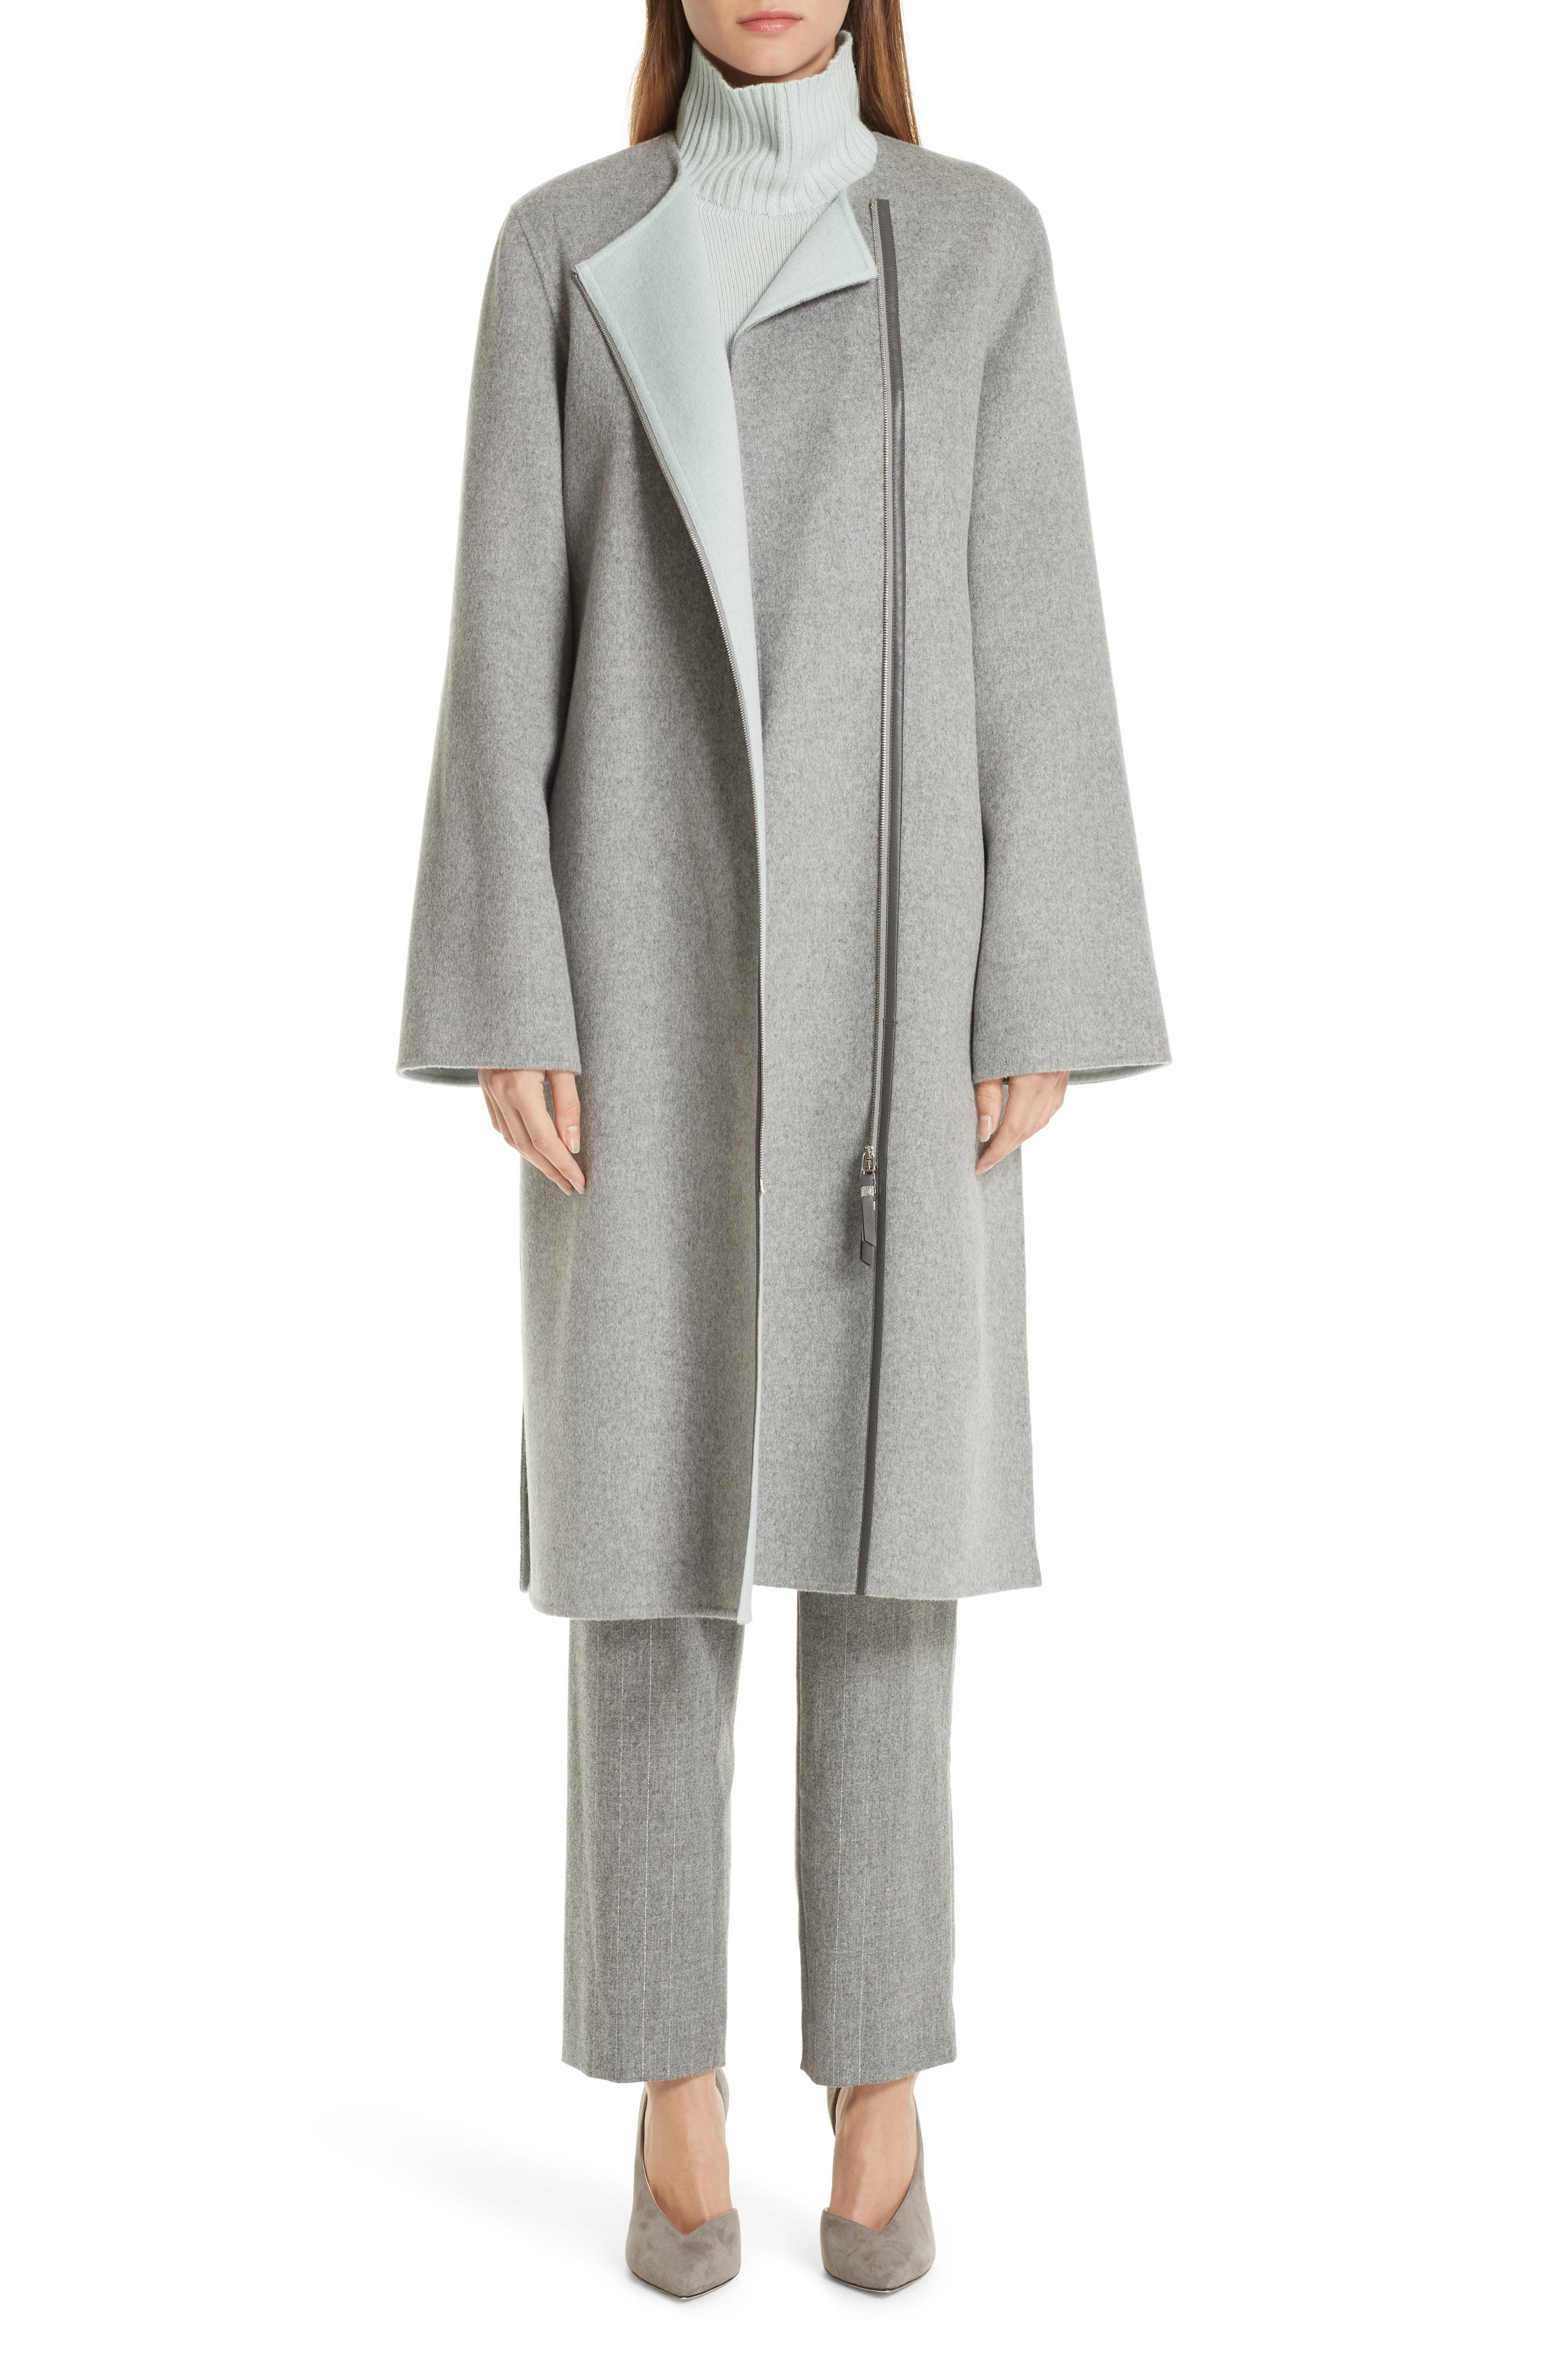 LAFAYETTE 148 NEW YORK,                             Relaxed Cashmere Turtleneck Sweater,                             Alternate thumbnail 7, color,                             400